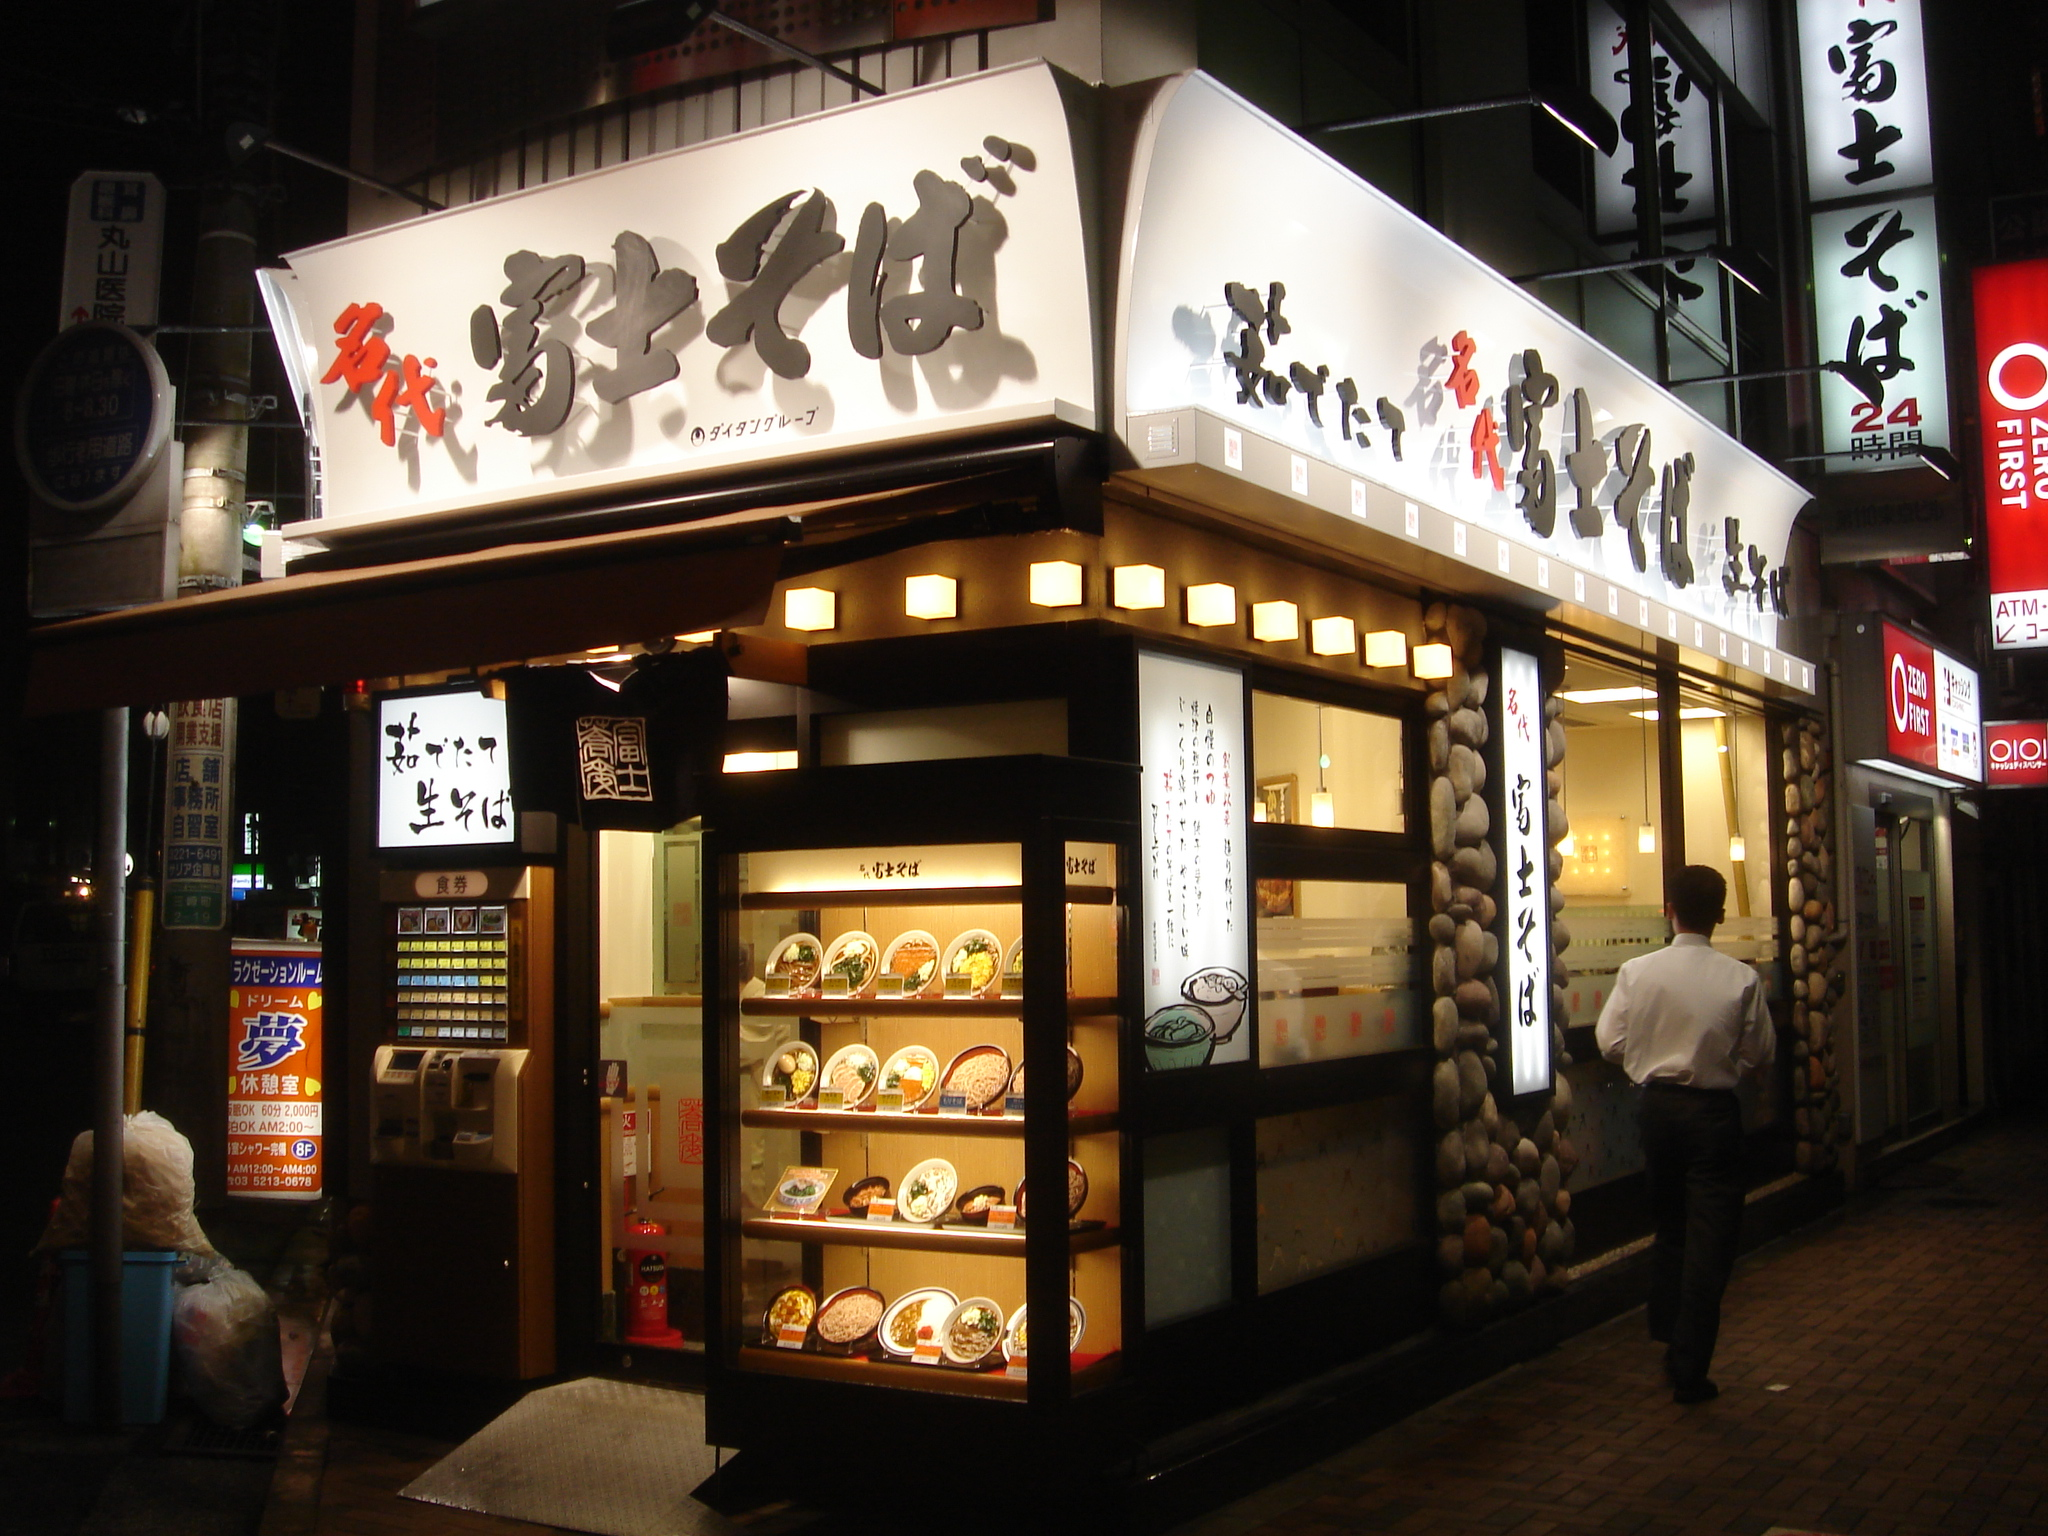 Soba_buffet_near_Suidobashi_Station_by_shibainu